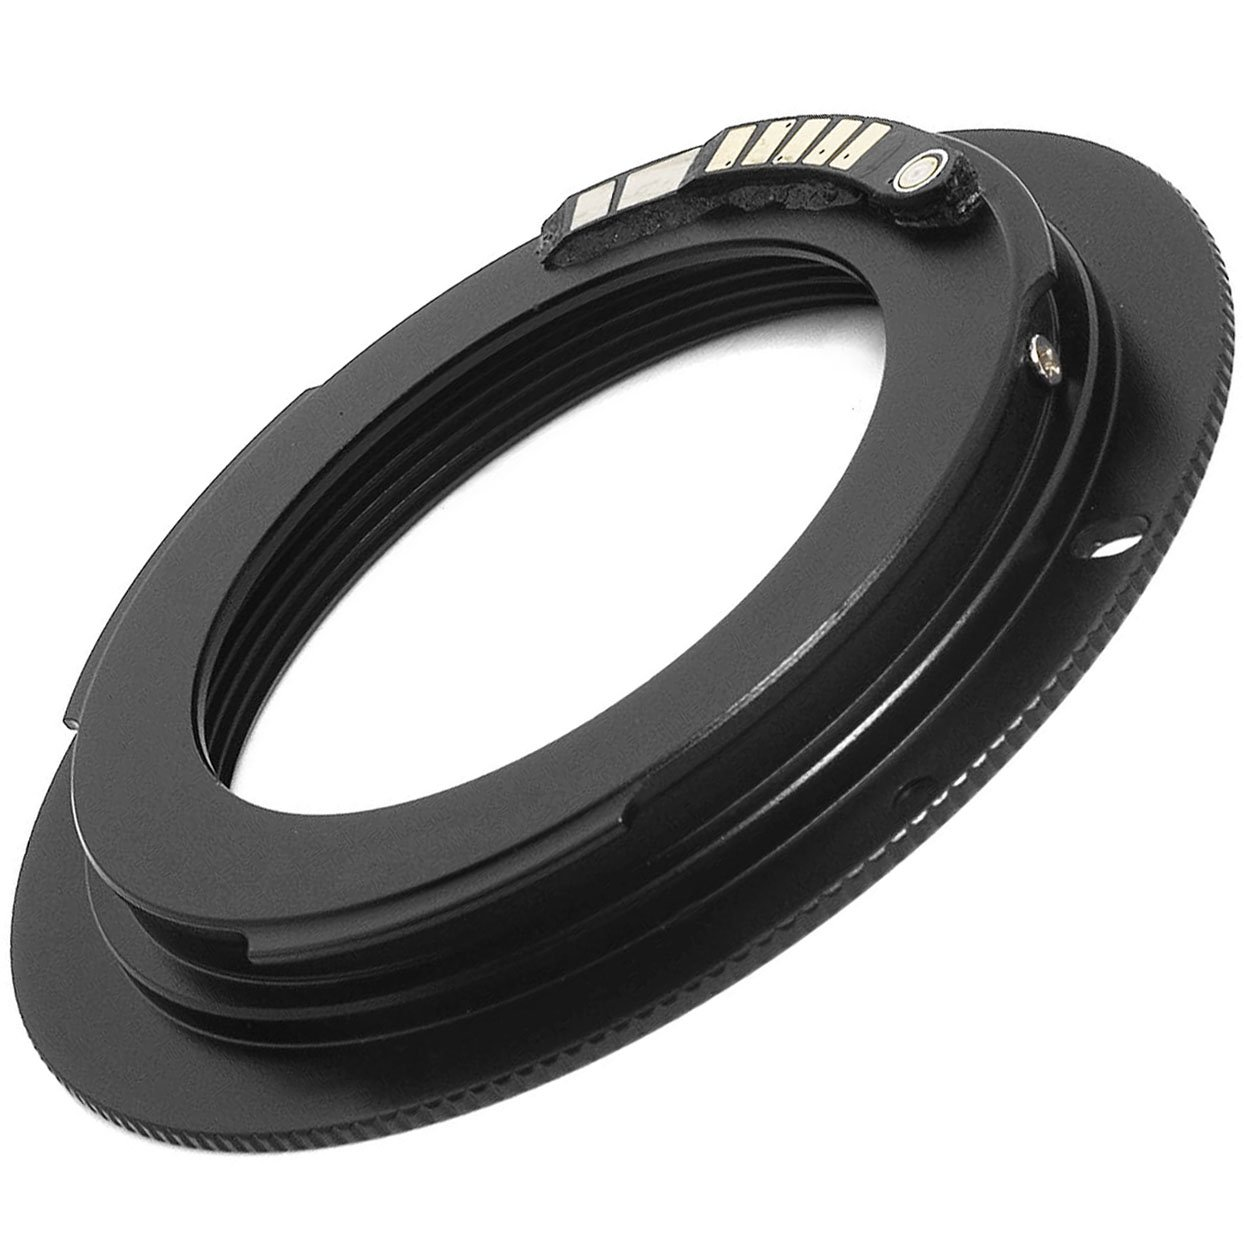 Lens Adapter For M42 Lens to Canon EOS 1000D 1100D T3i T2i With AF Confirm DC133 XCSOURCE